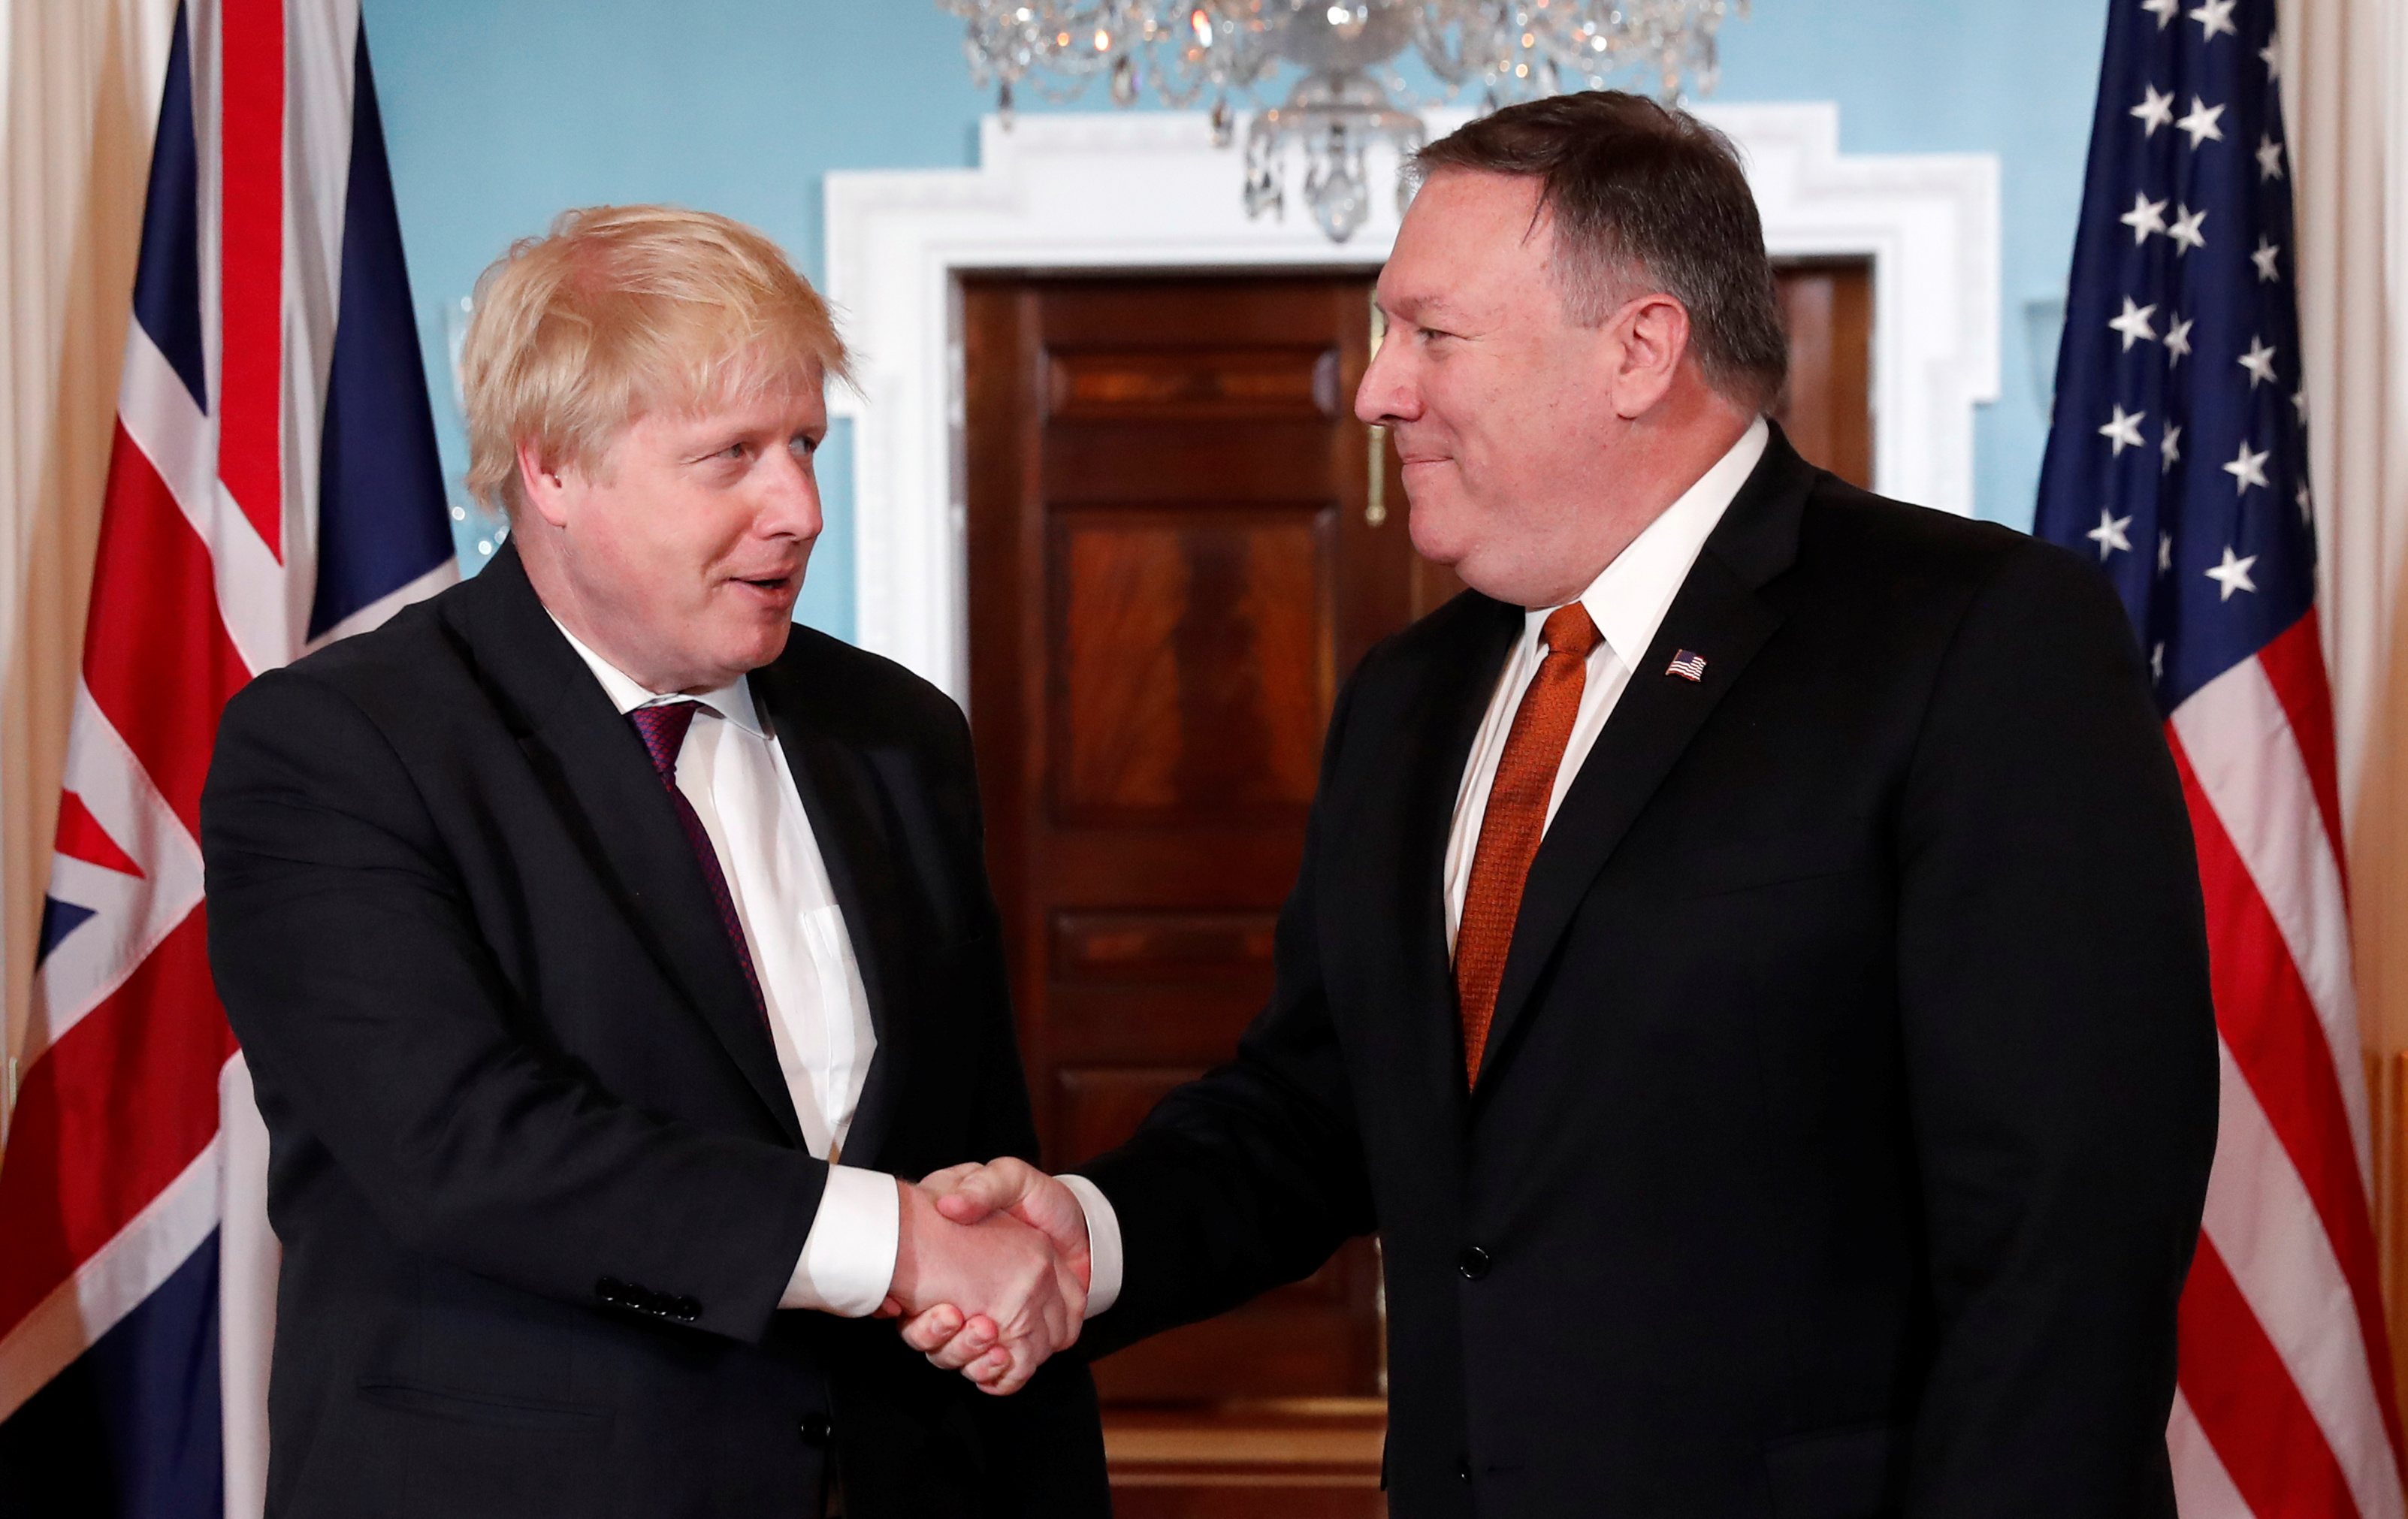 U.S. Secretary of State Mike Pompeo, right, meets with British Foreign Secretary Boris Johnson at the State Department in Washington, May 7, 2018.